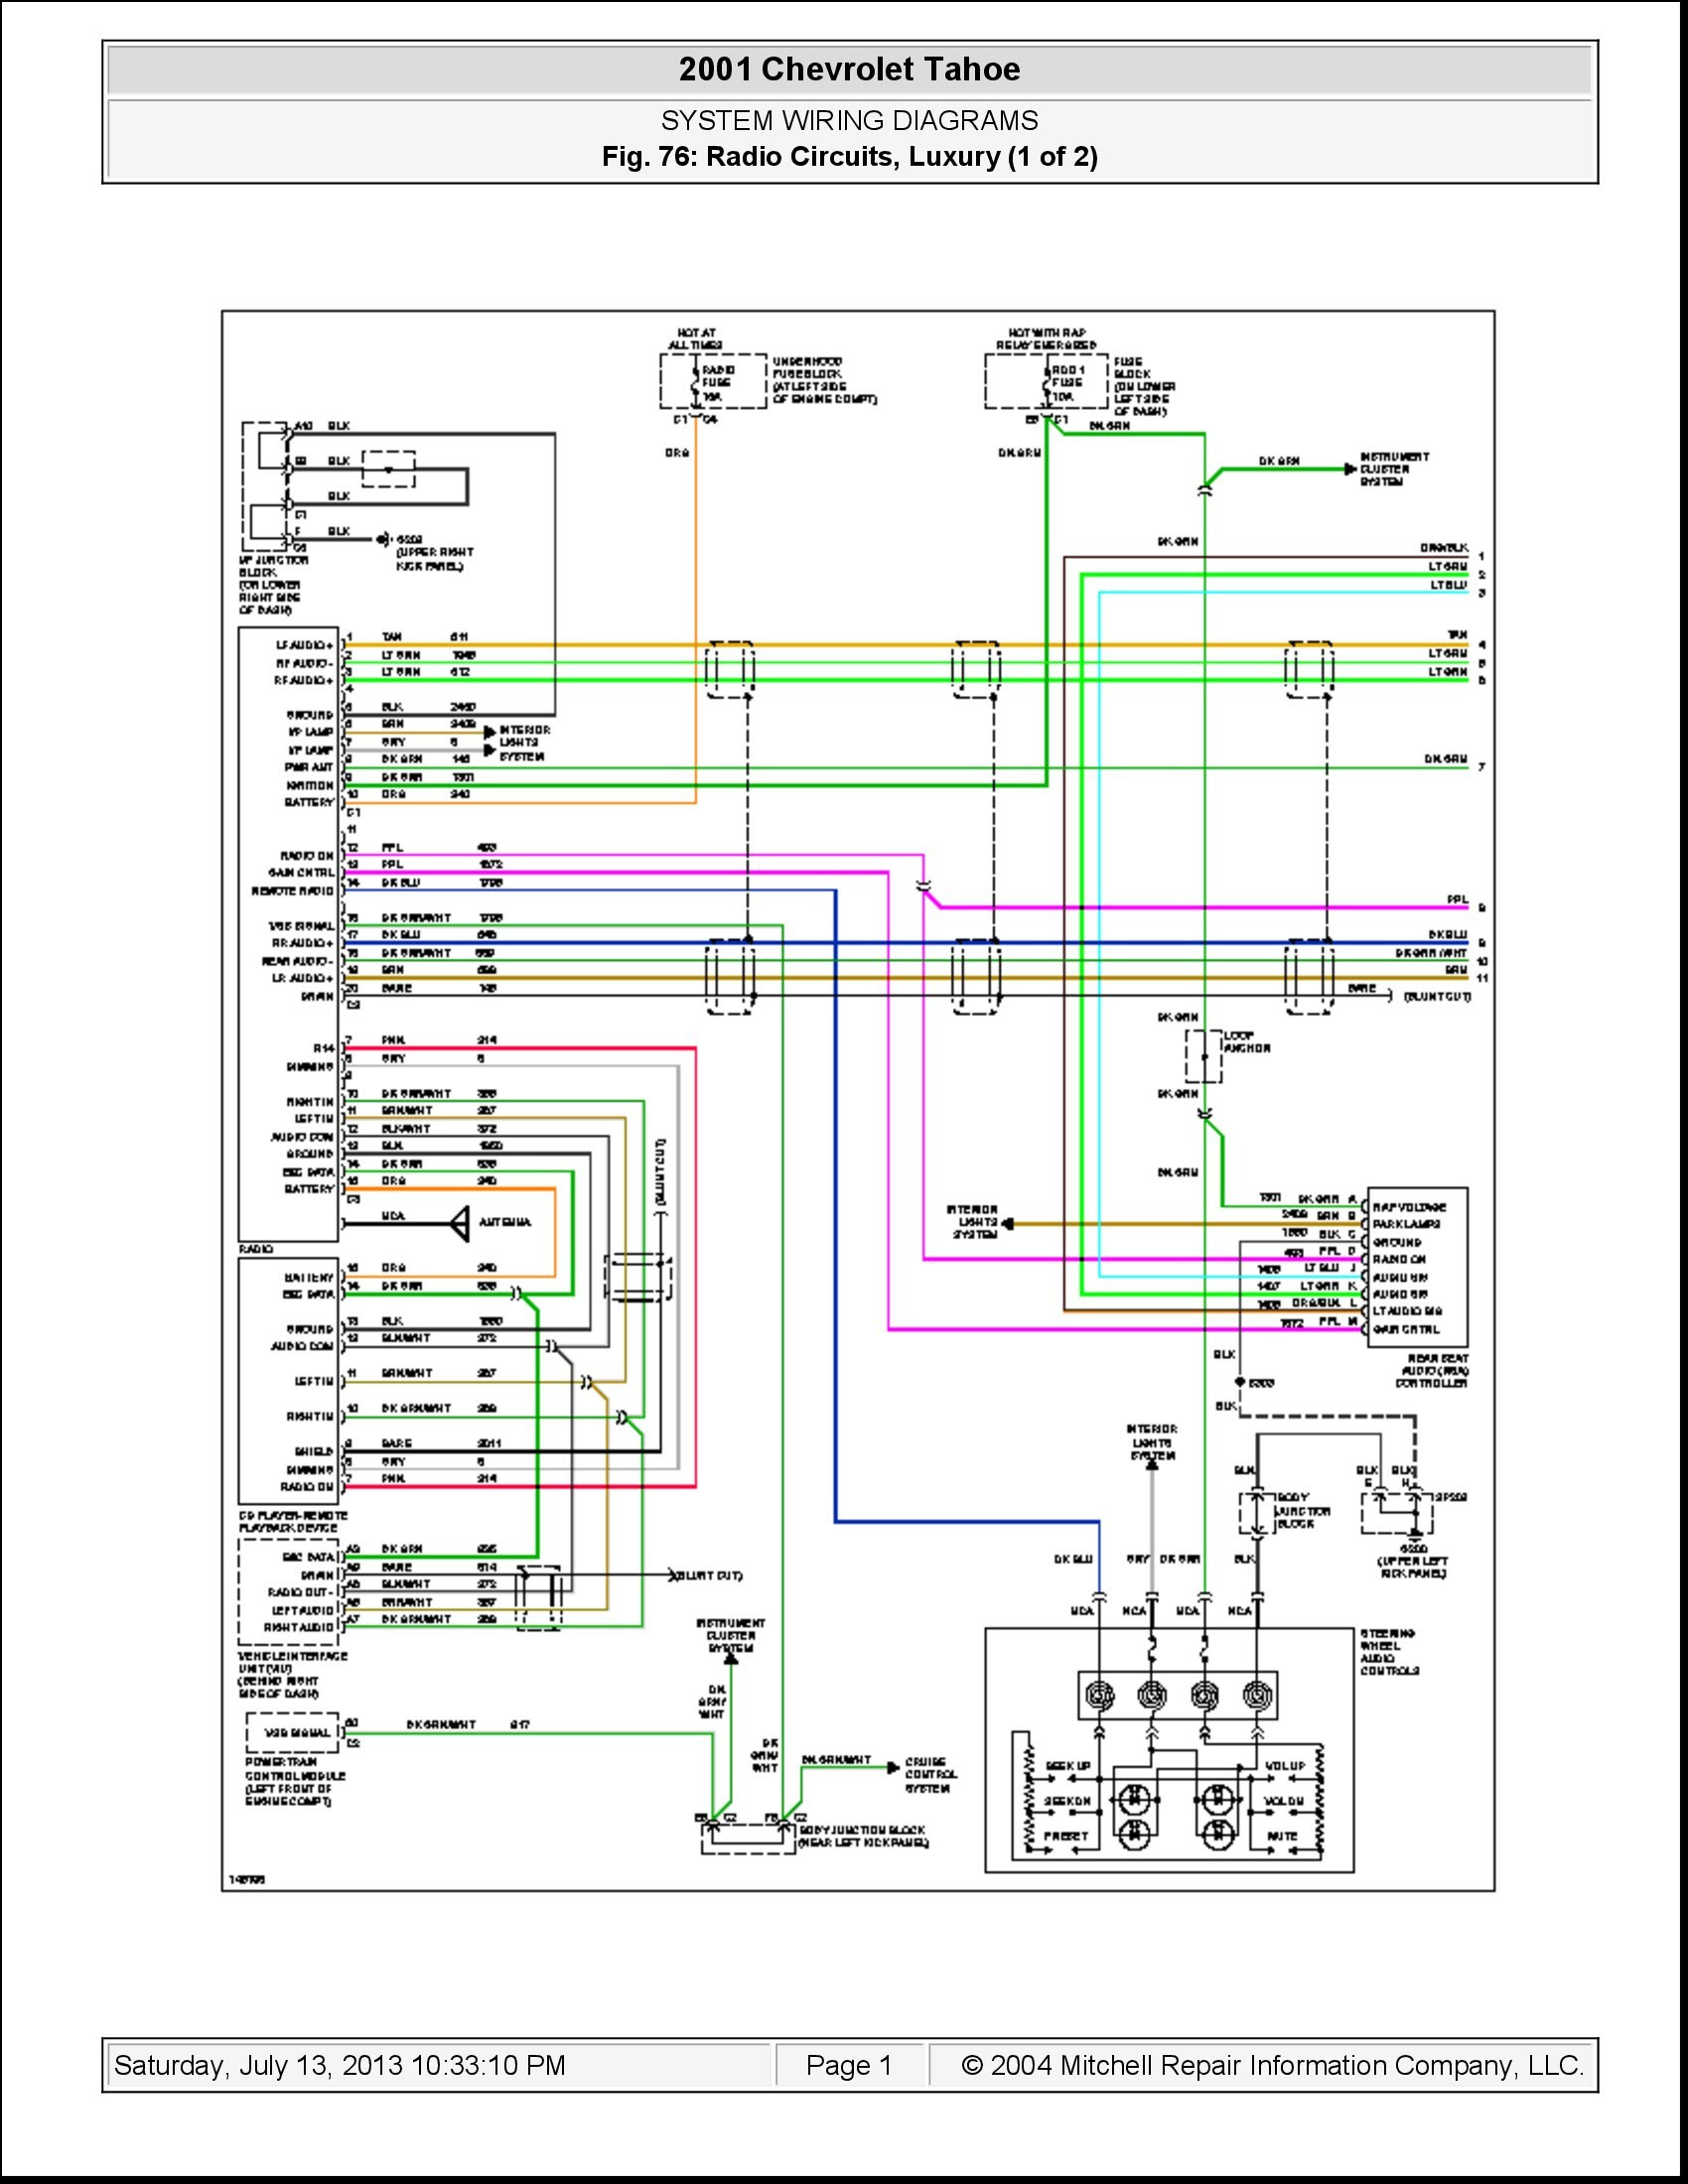 Diagram 88 Gm Radio Wiring Diagram Full Version Hd Quality Wiring Diagram Diagramnetaz Apd Audax It